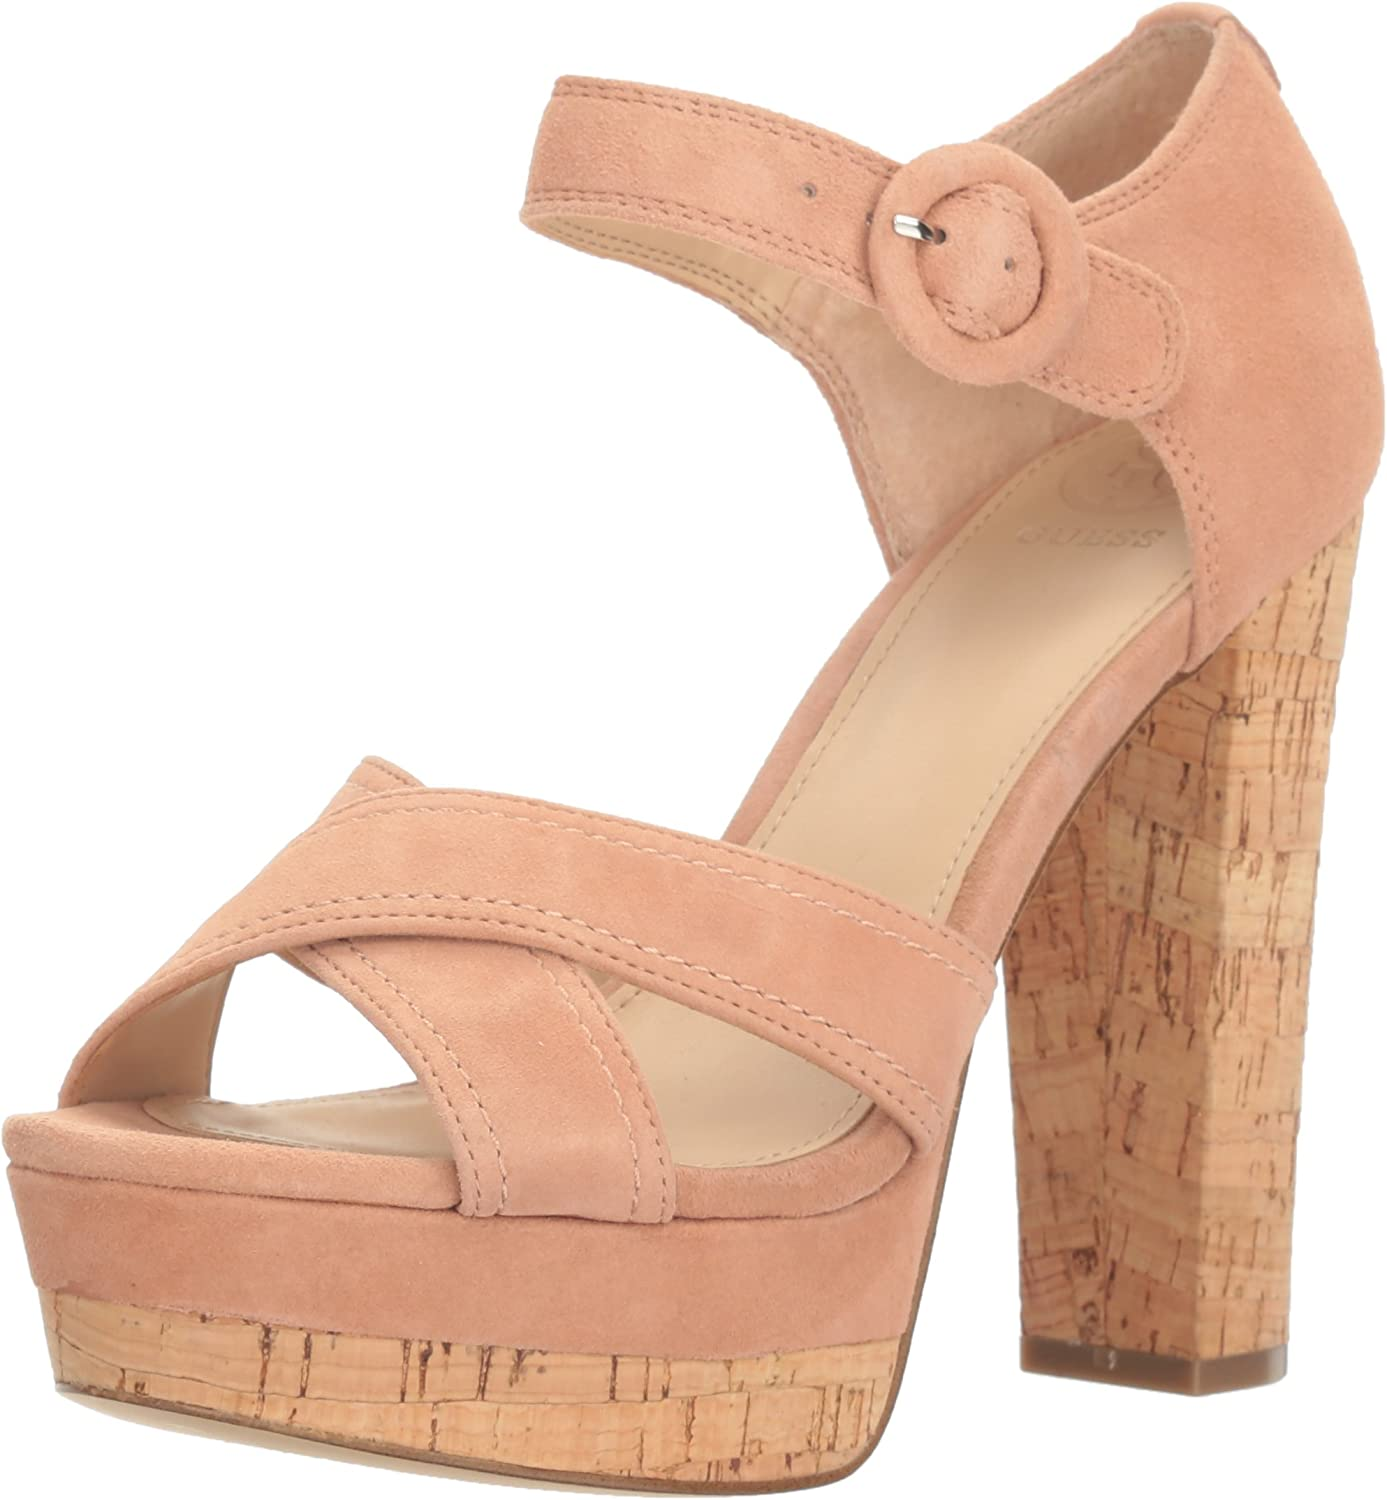 GUESS Limited Popular product Special Price Women's Parris Heeled Sandal